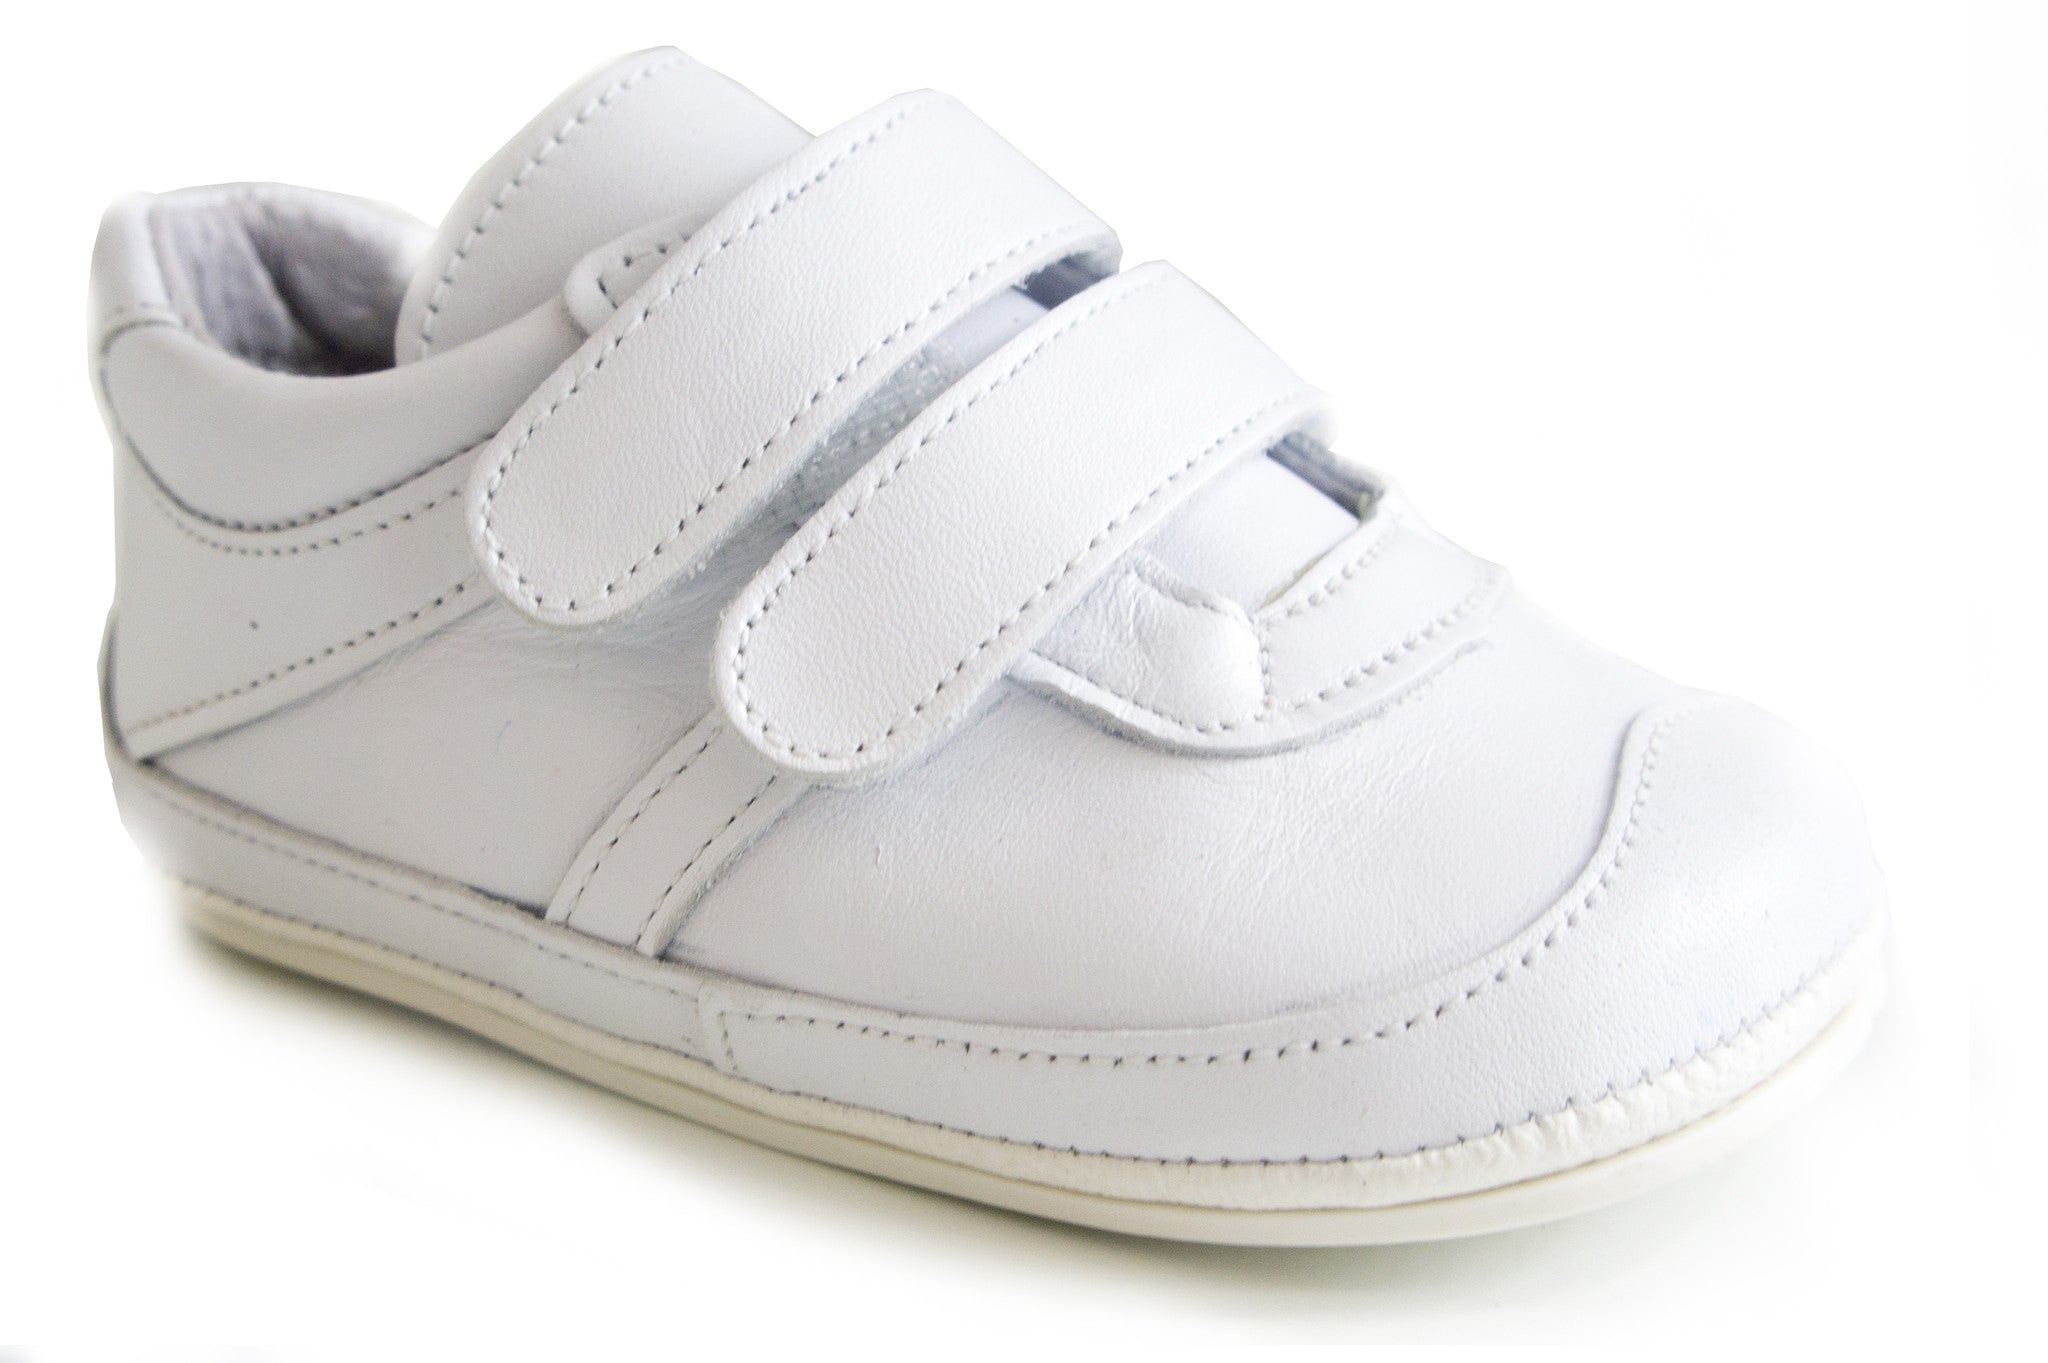 Casual Sport White soft leather shoes unisex for boys and girls by Patucos